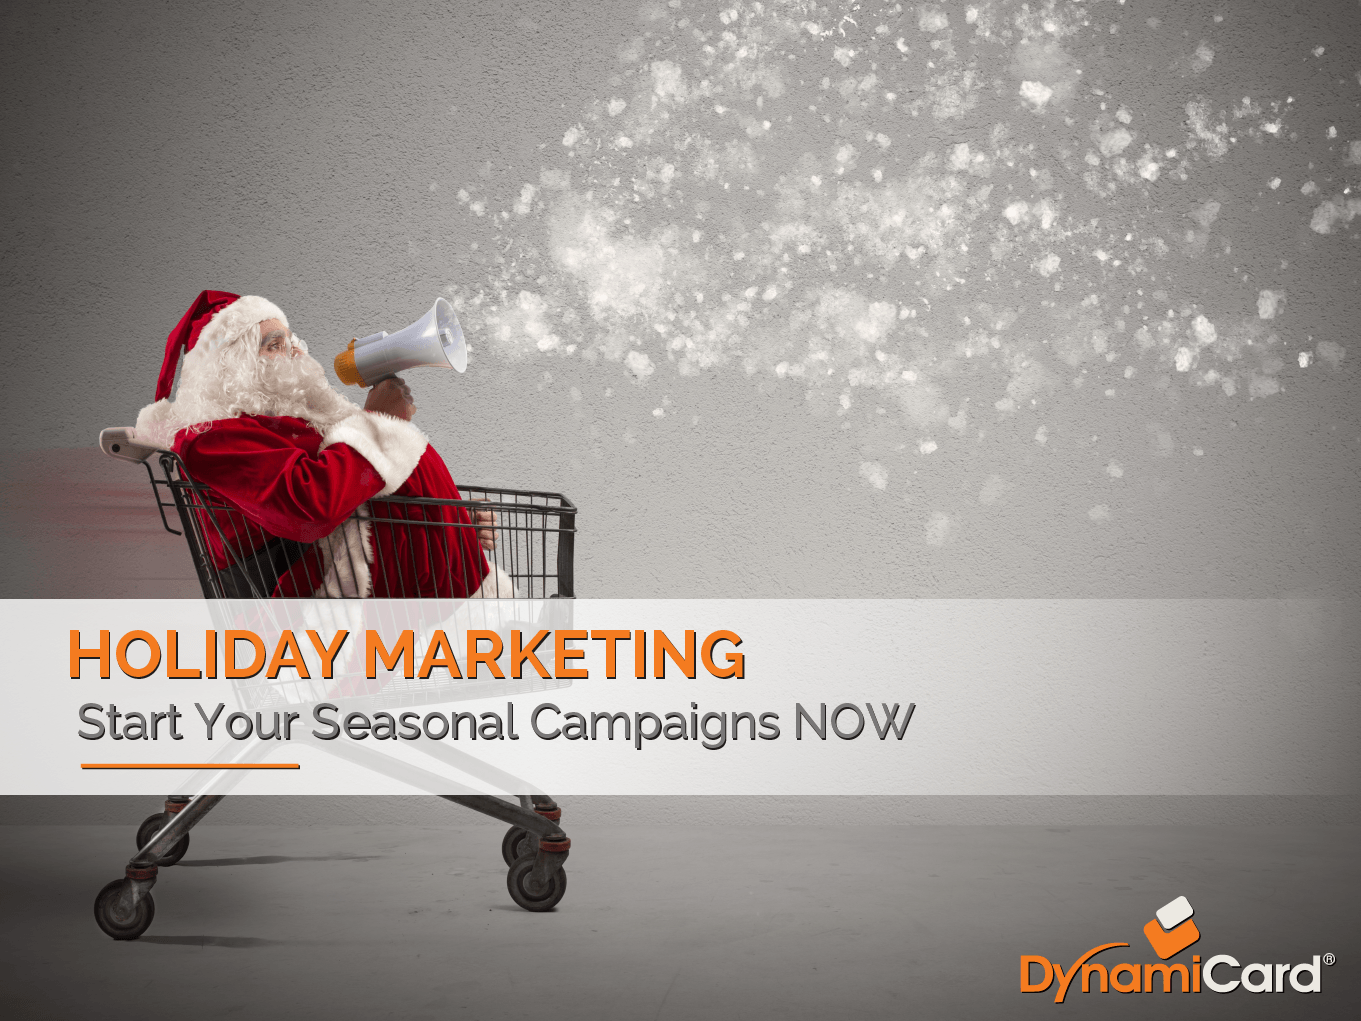 Holiday Seasonal Marketing